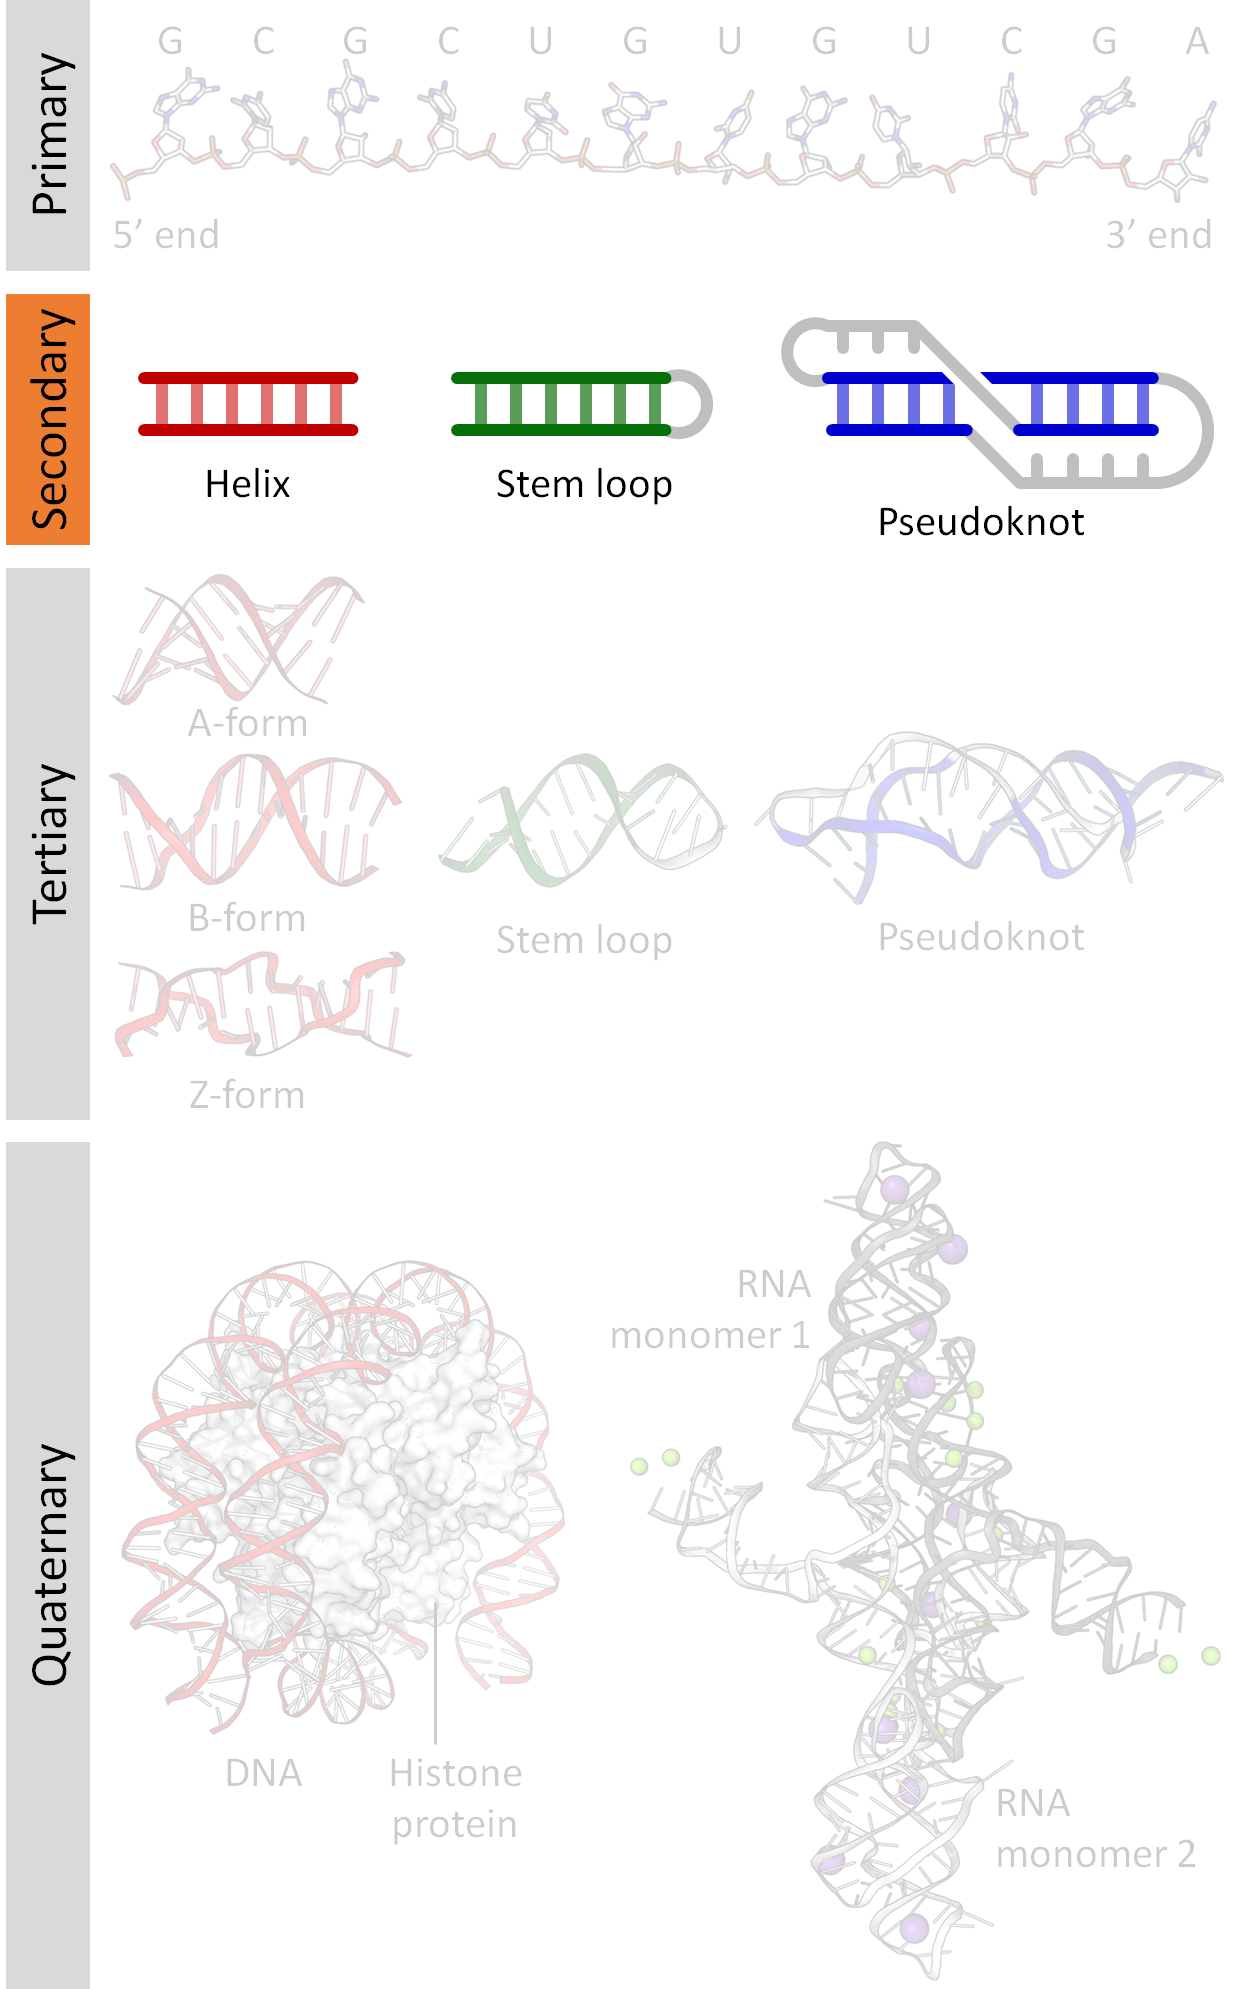 Biophysical Chemistry of Nucleic Acids and Proteins